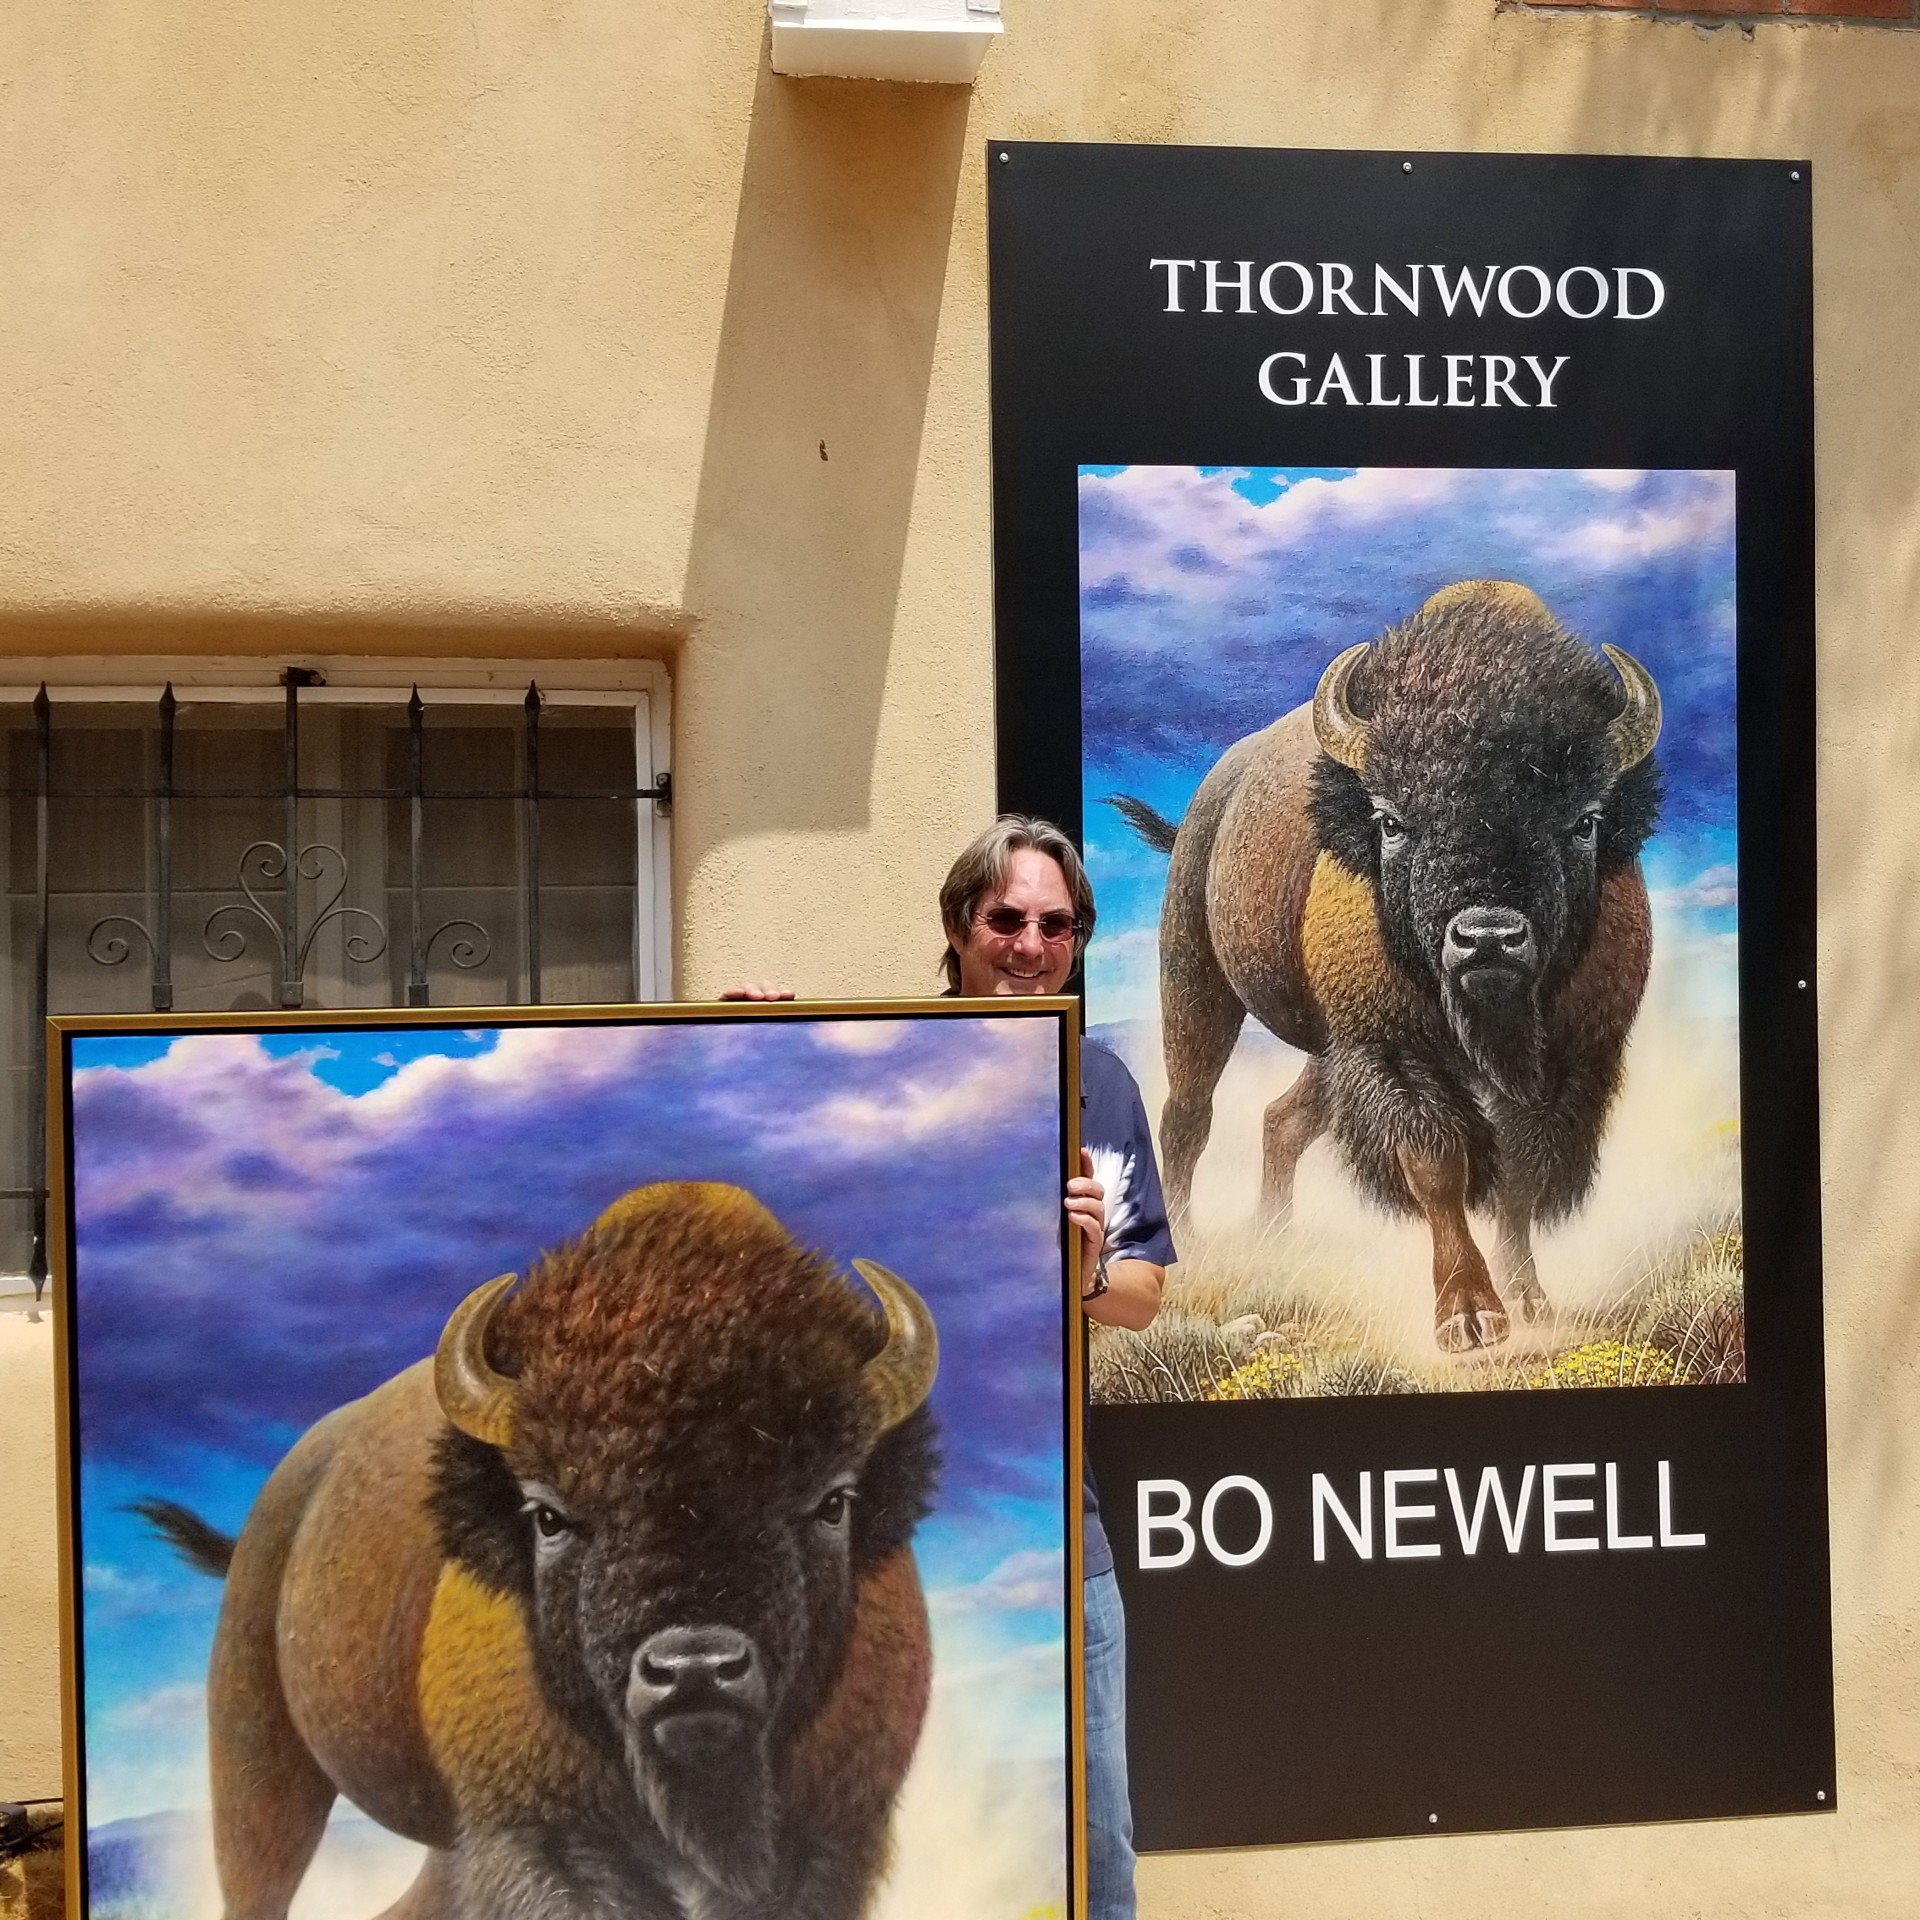 """Bo Newell Next to Gallery Banner with New Arrival: """"Unchallenged"""" by Bo Newell"""